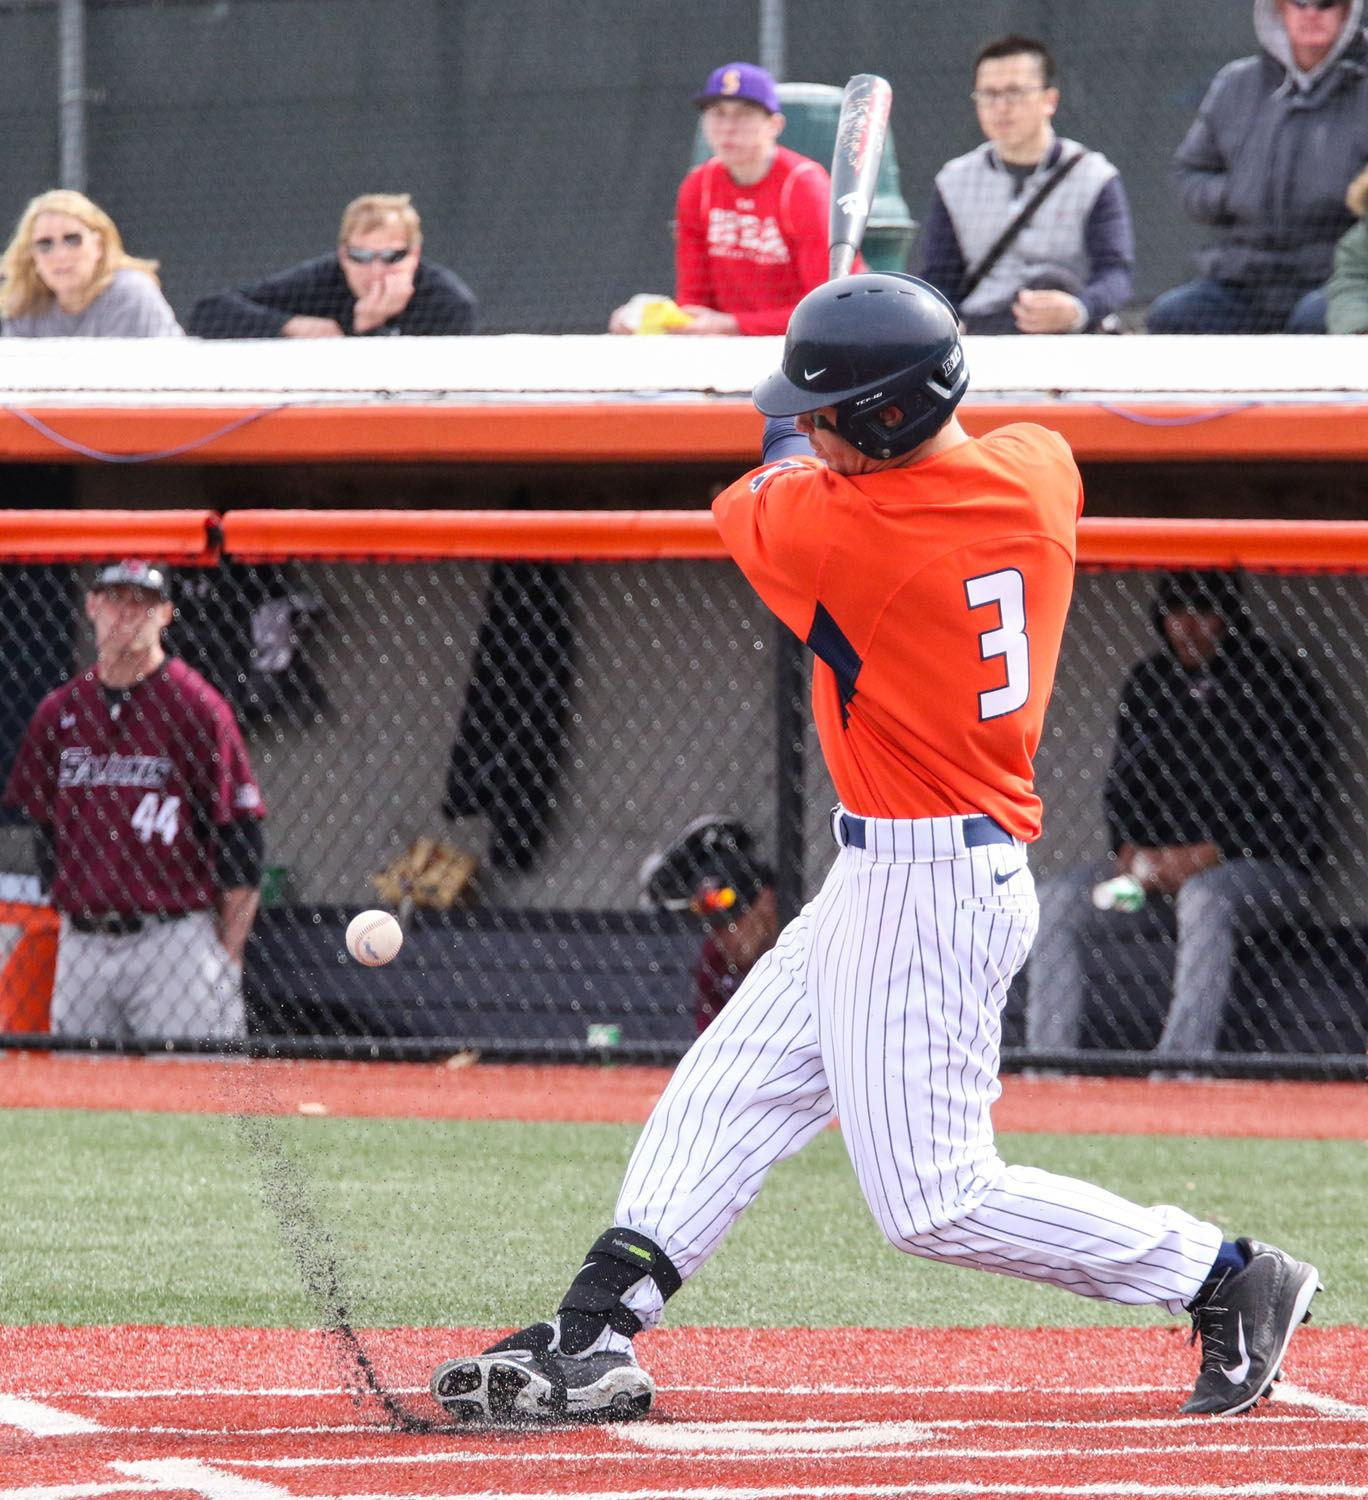 Illinois' Casey Fletcher (3) fouls the ball during the baseball game v. SIU at Illinois Field on Saturday. Illinois won 6-2. Fletcher scored a home run Sunday that gave the Illini a lead.